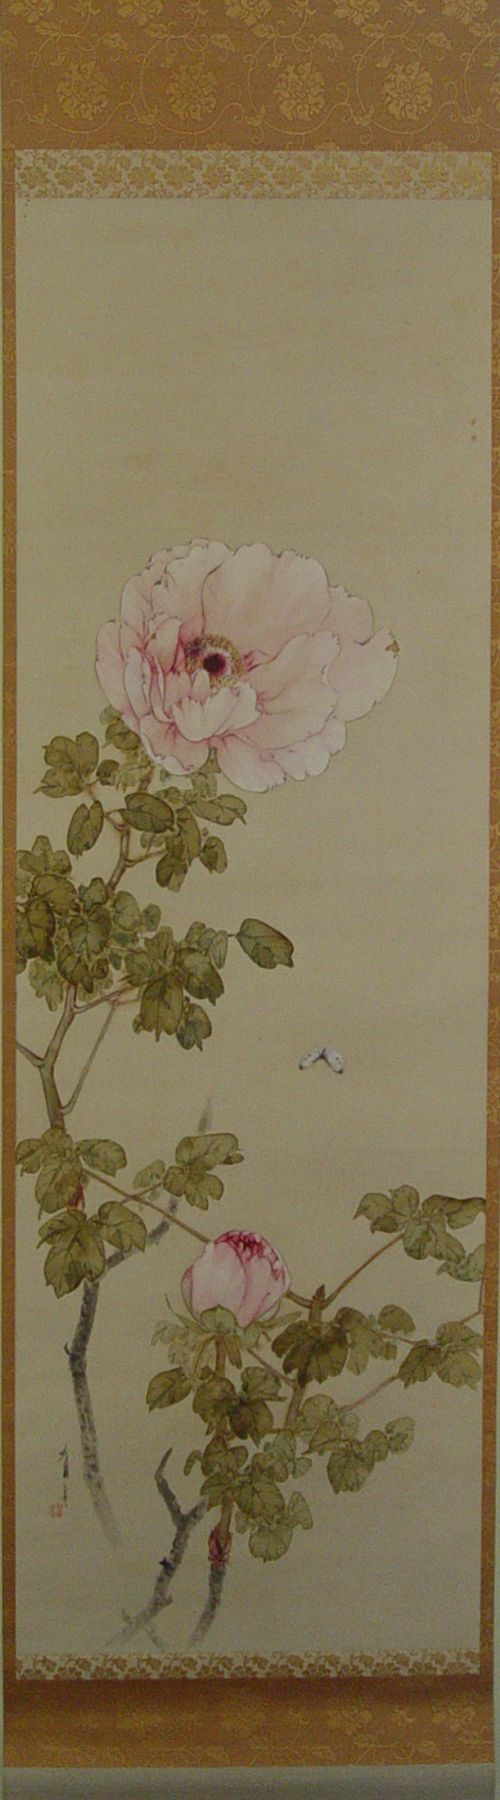 Watanabe Seitei (1851-1918), Peonies in color on silk